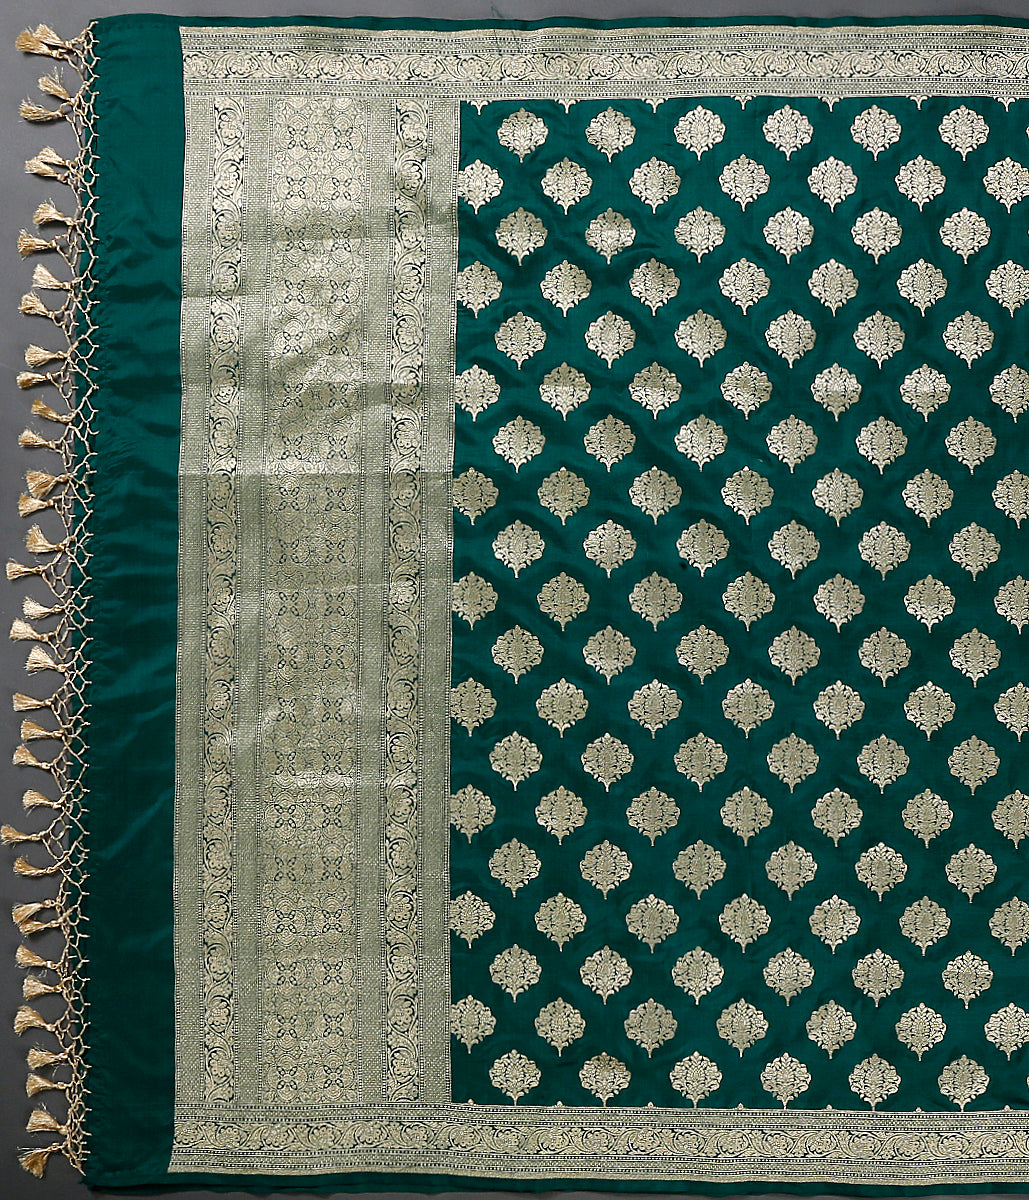 Green katan silk dupatta with leaf motifs